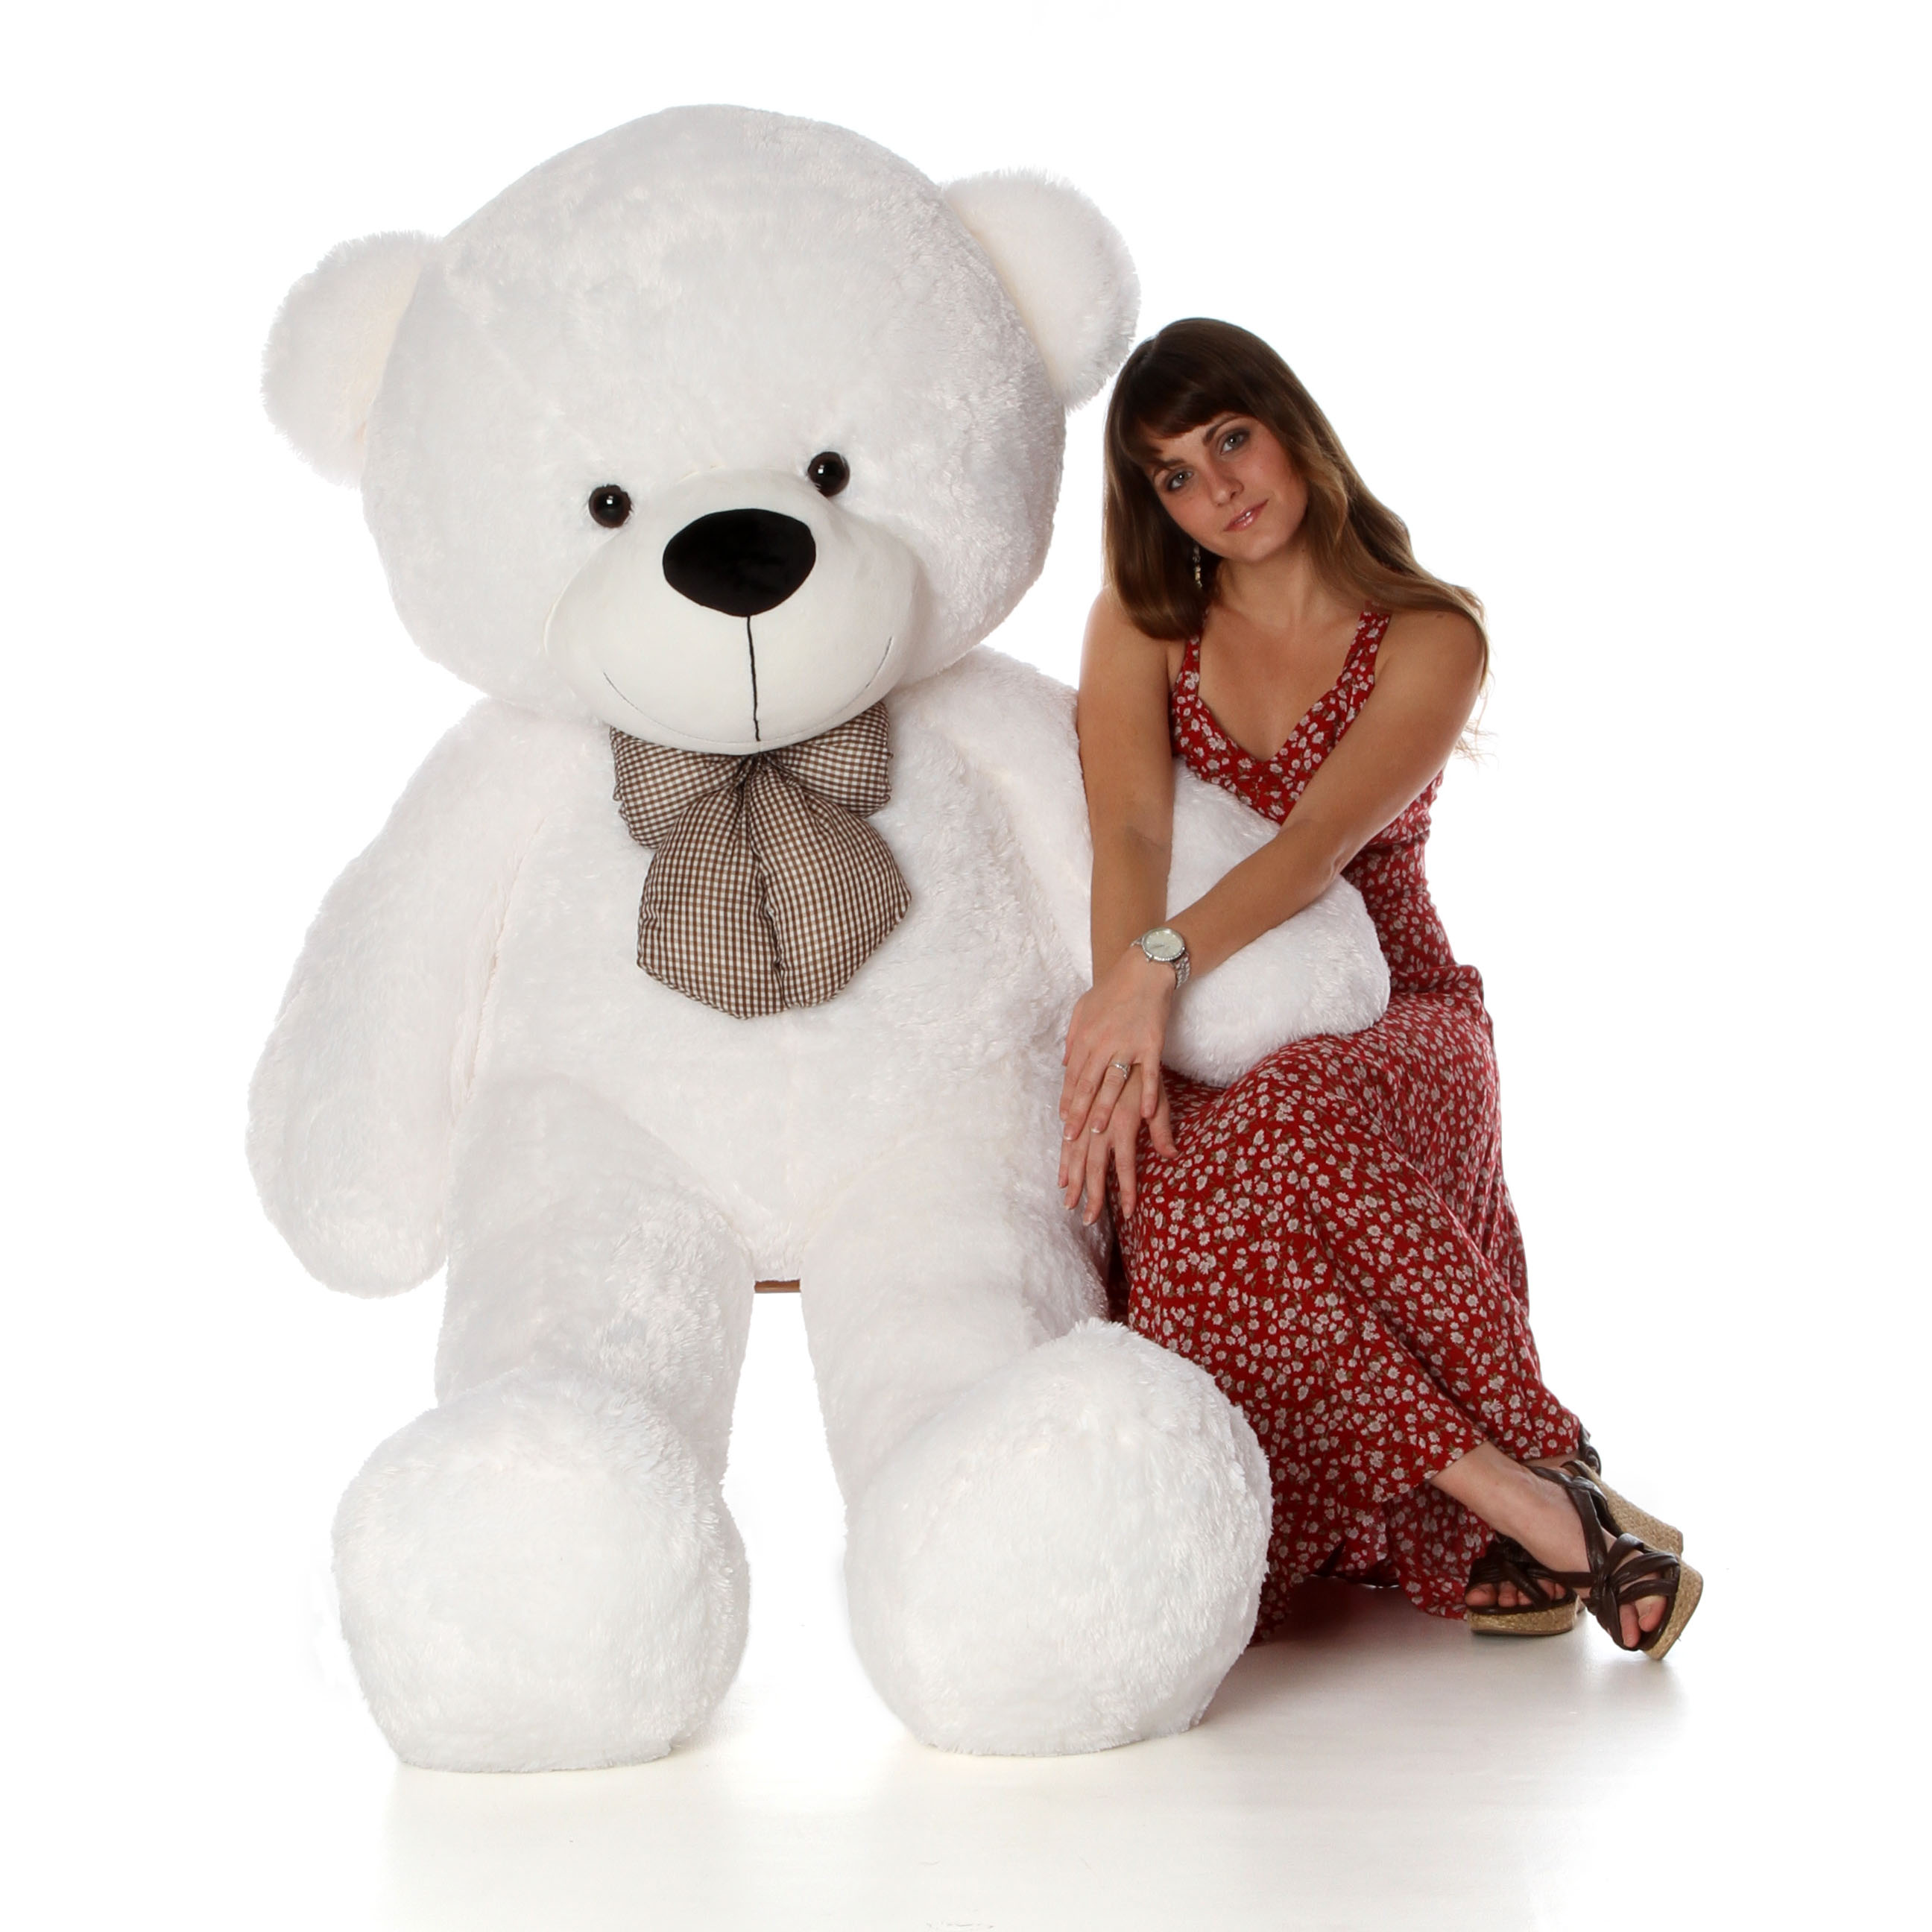 72in Giant Life Size White Teddy Bear With Hug Me Red